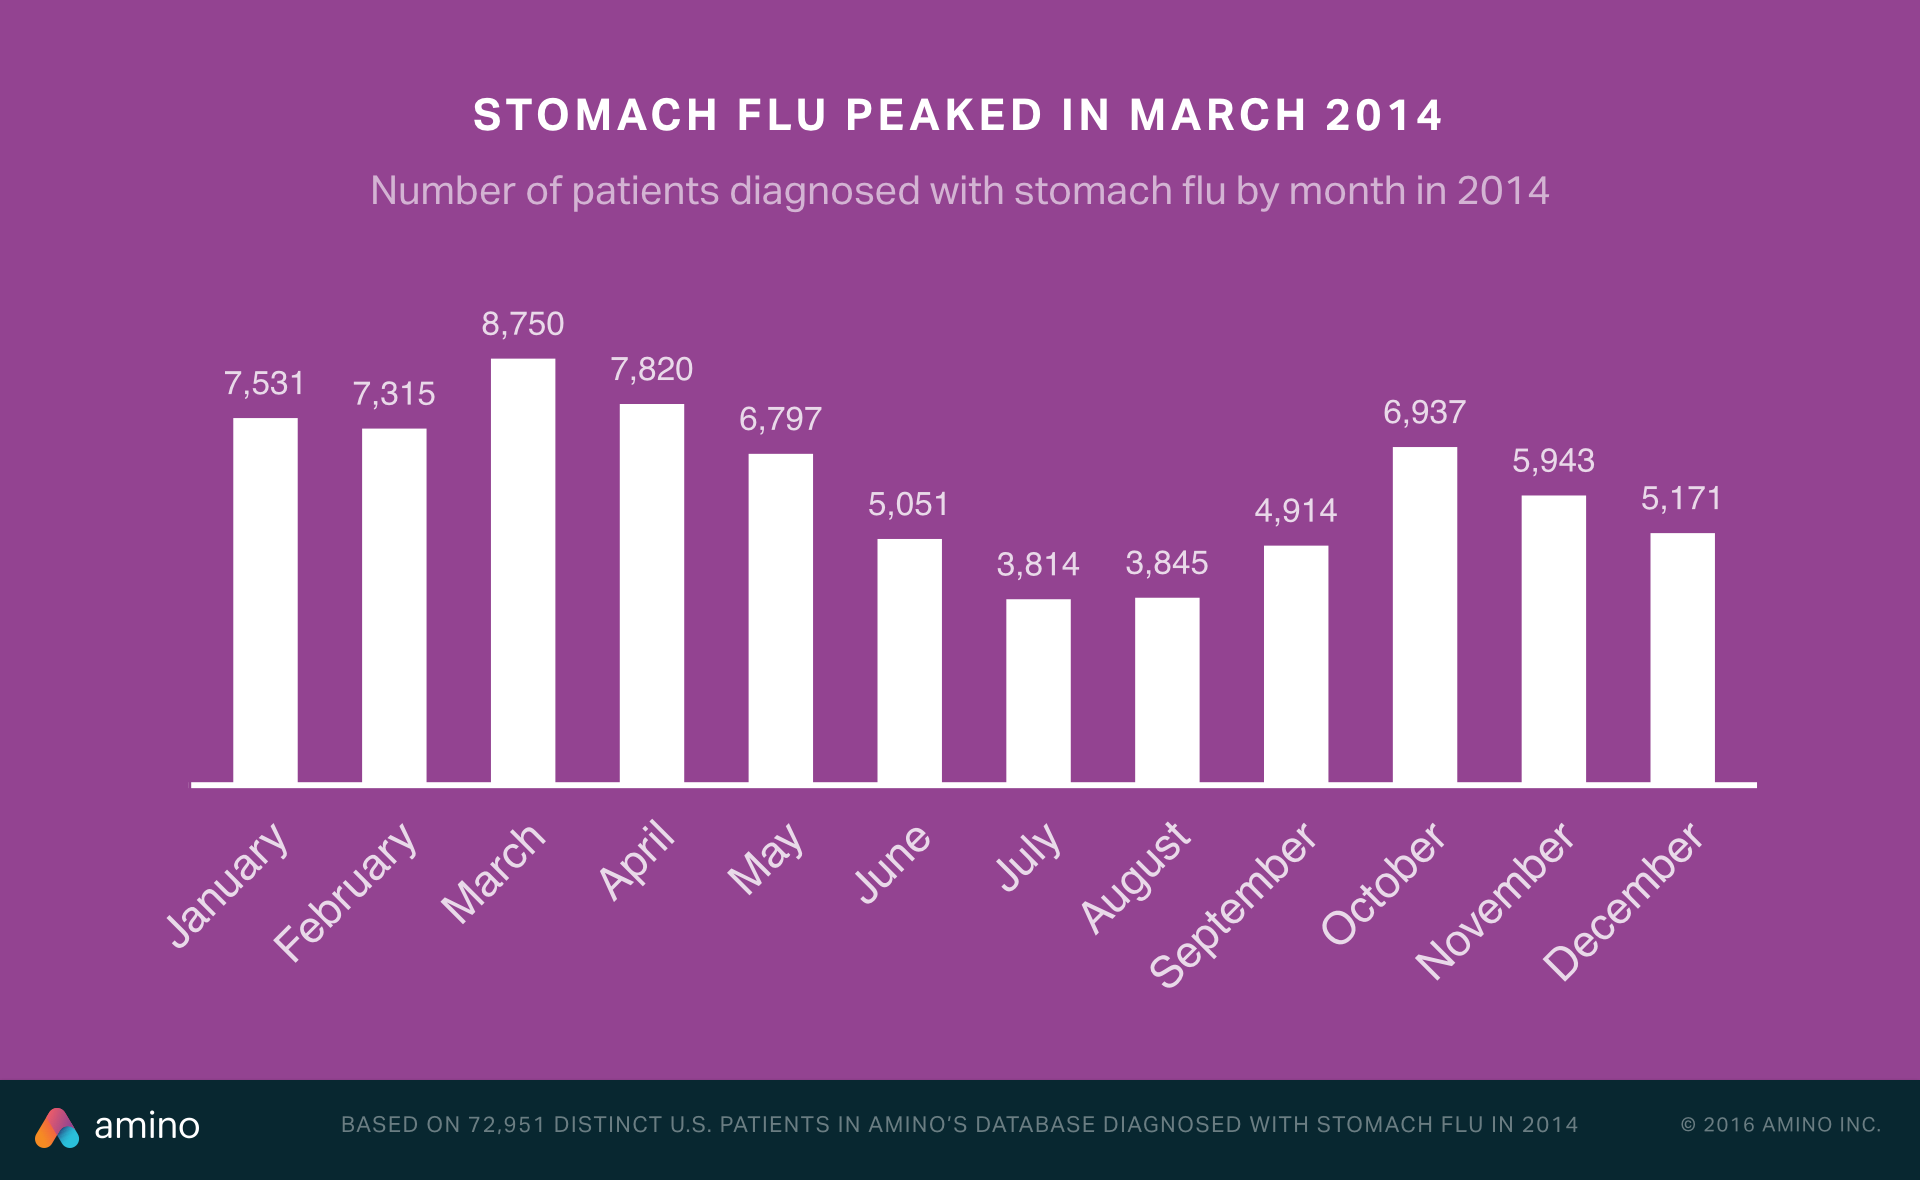 tracking stomach flu season across america gif - stomach flu peaked in march